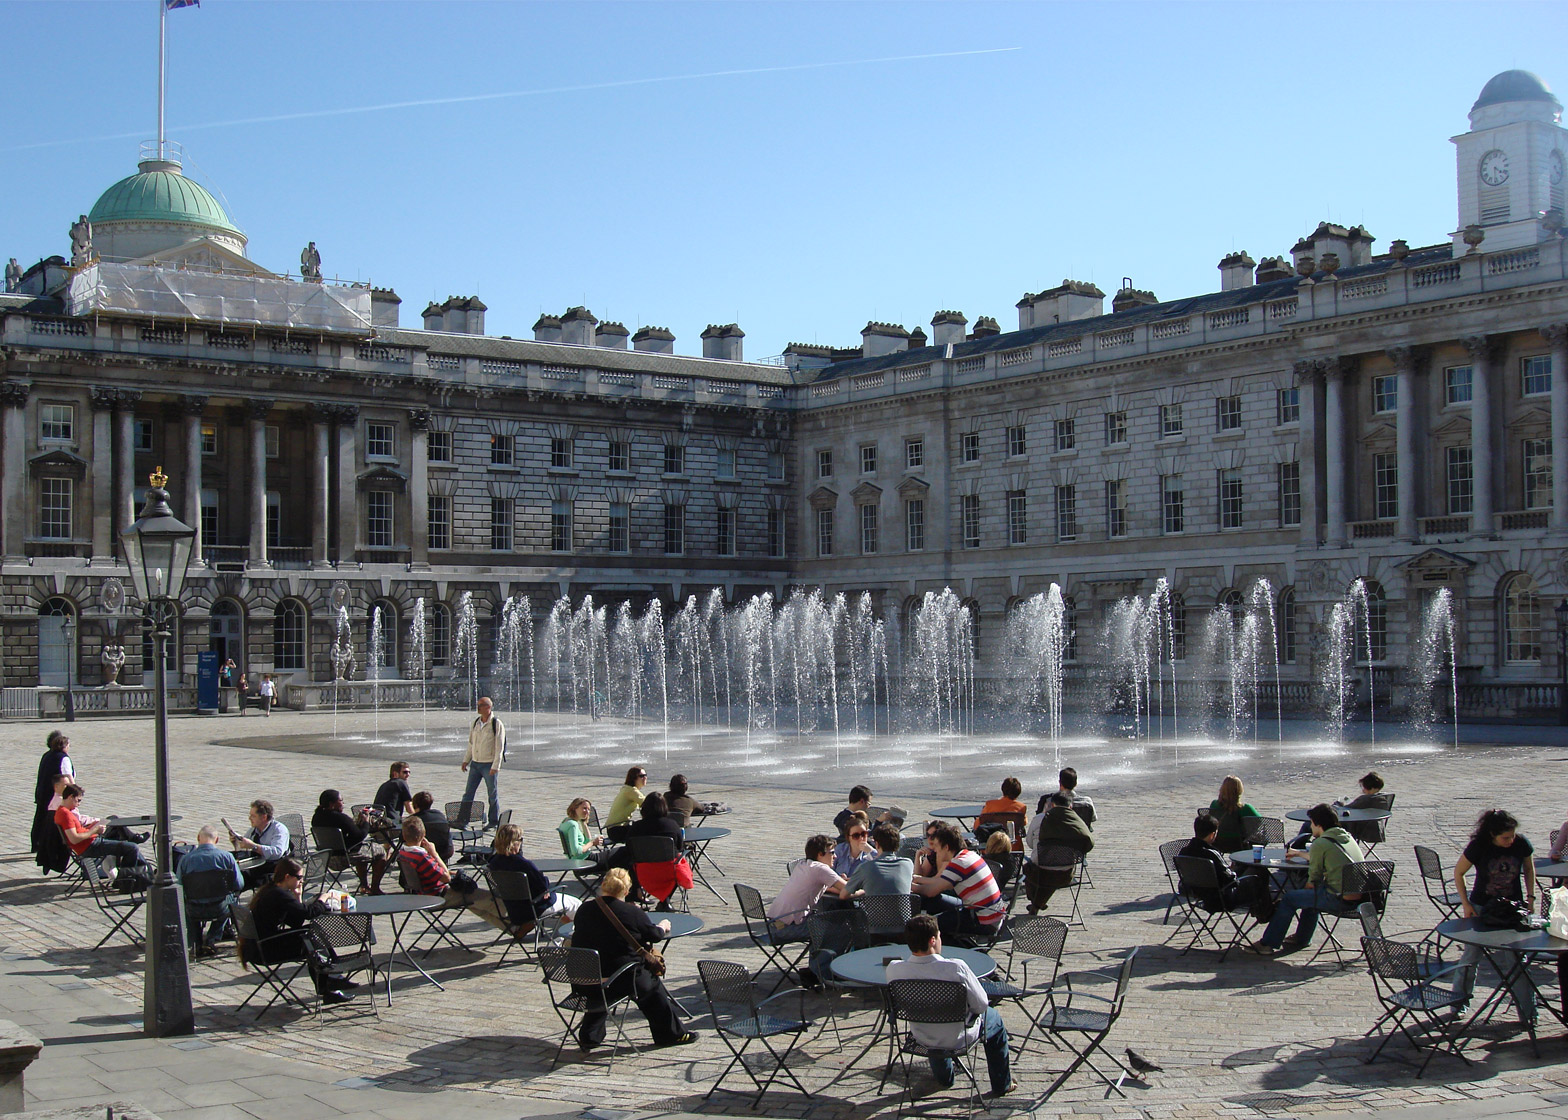 Somerset House in London. Photograph by Jeff Knowles